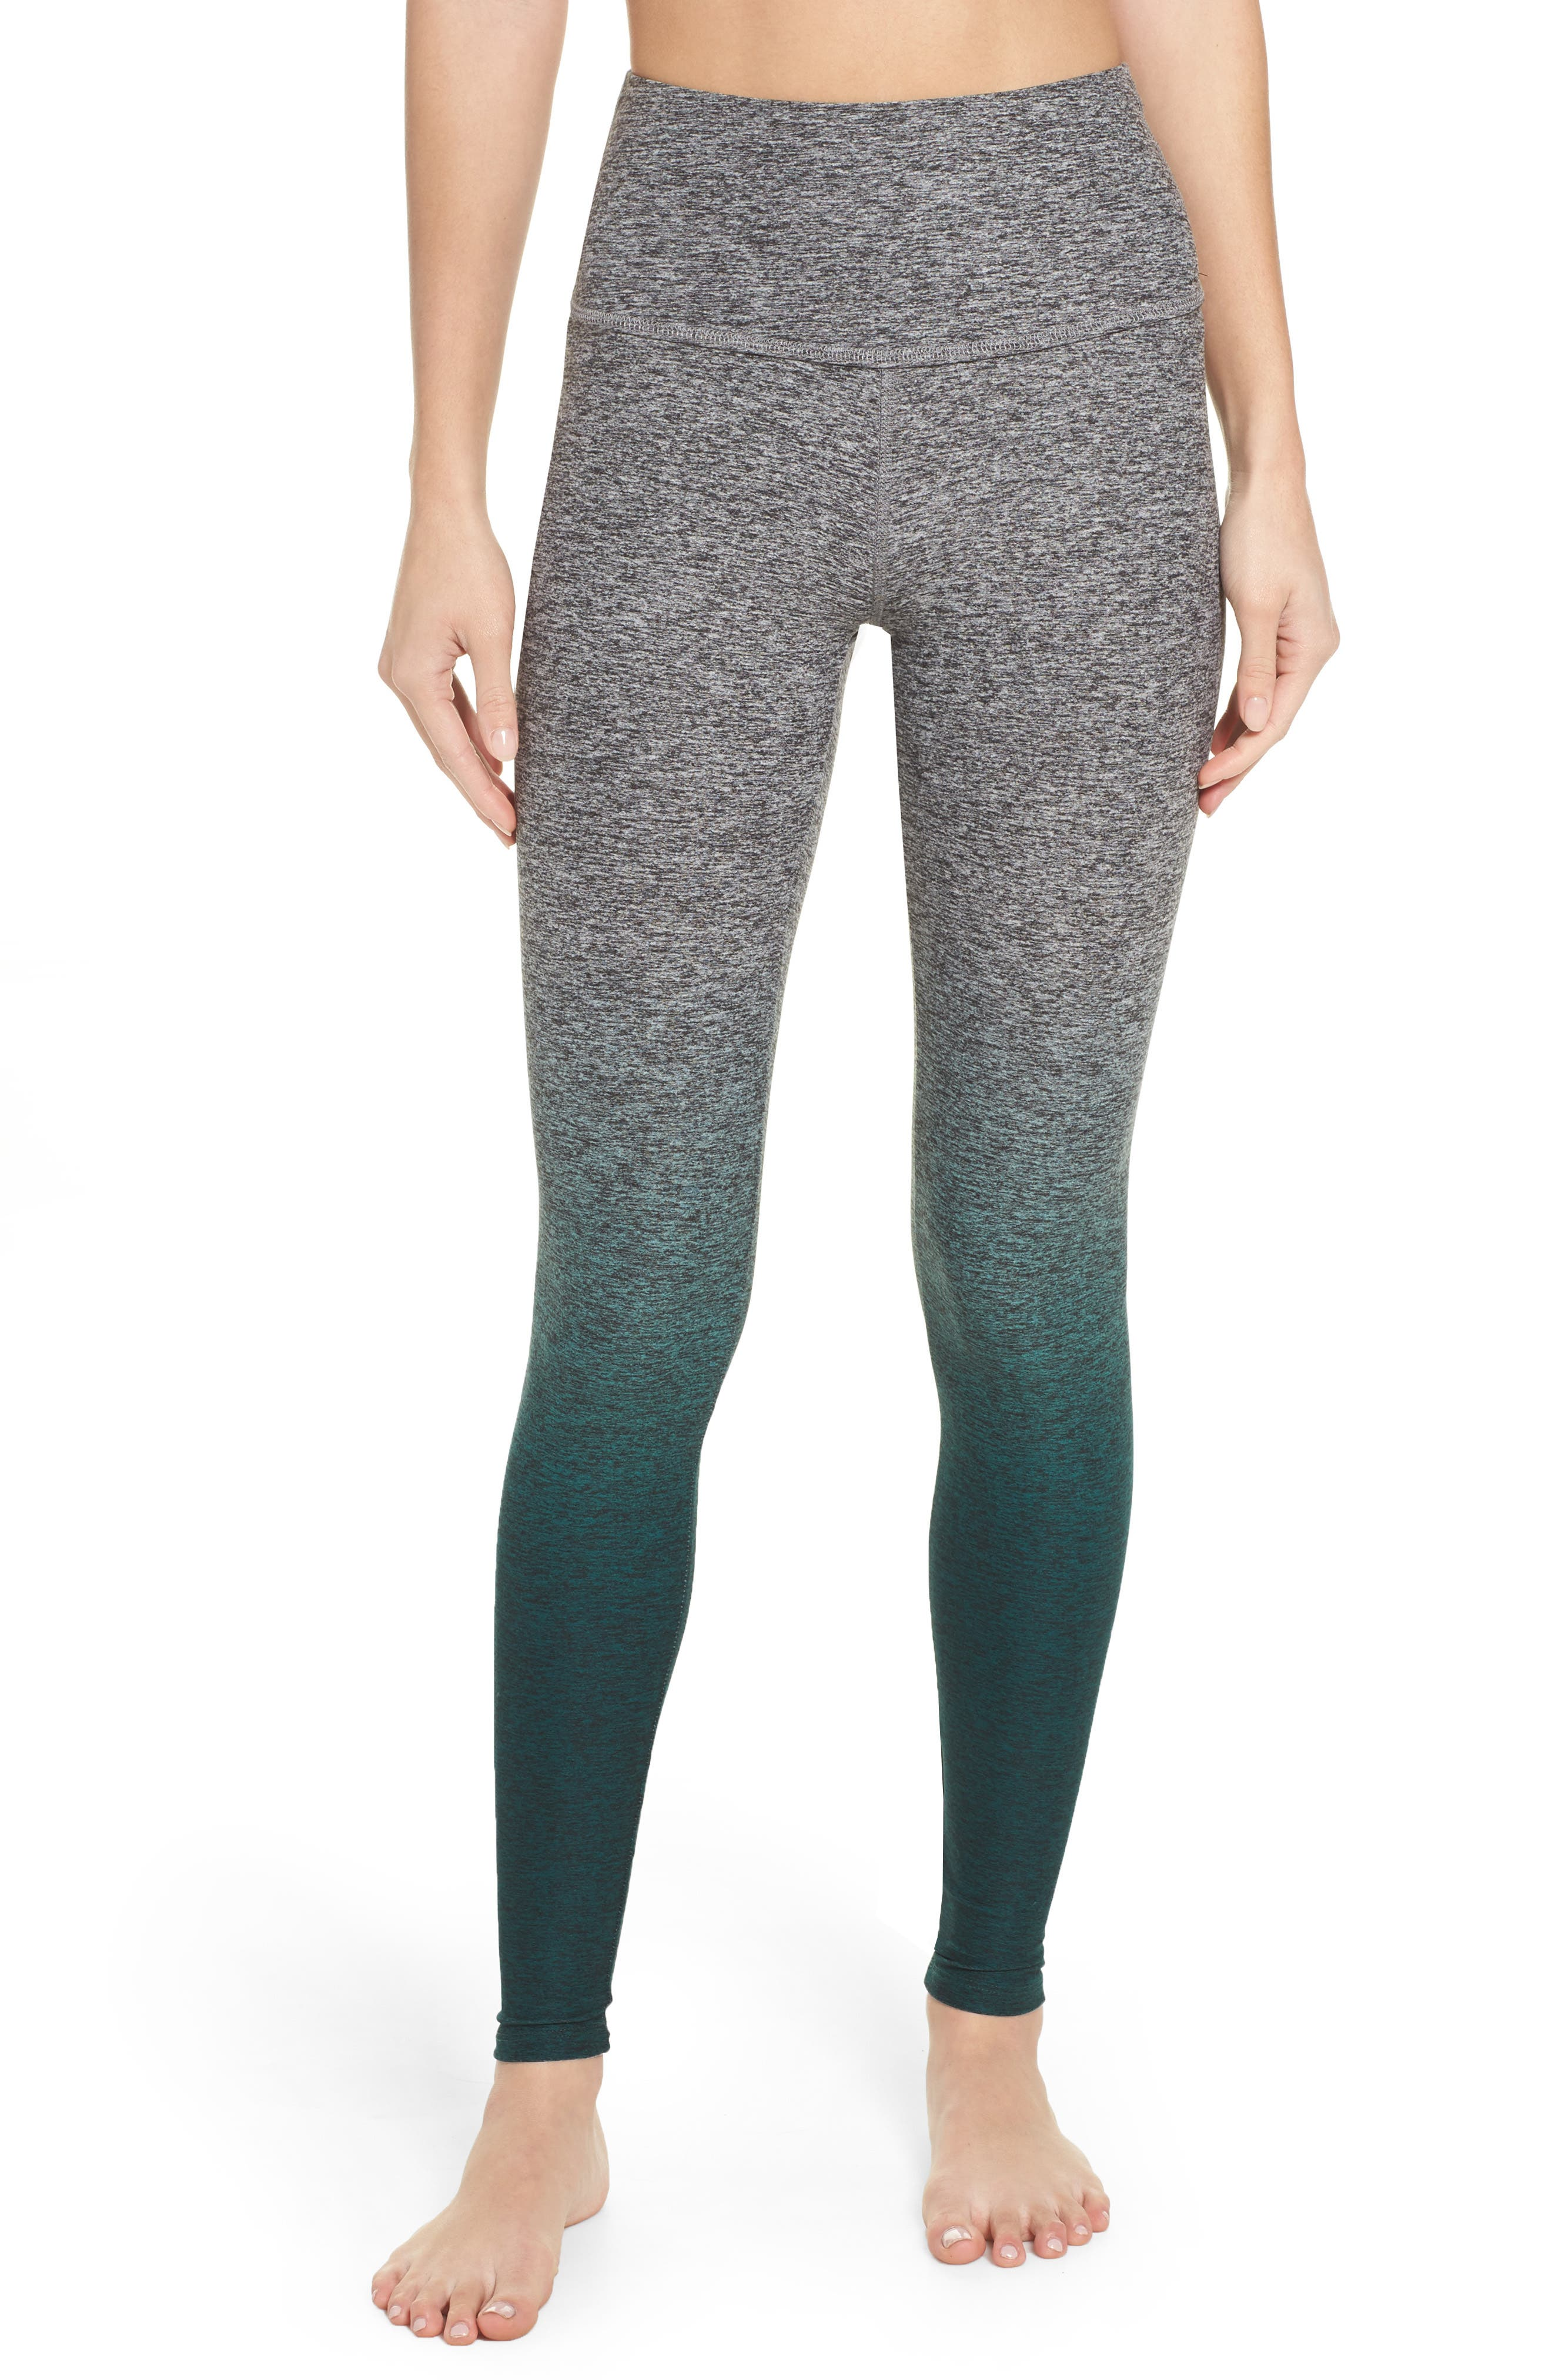 Space Dye High Waist Leggings,                         Main,                         color, Woodland Forest Ombre